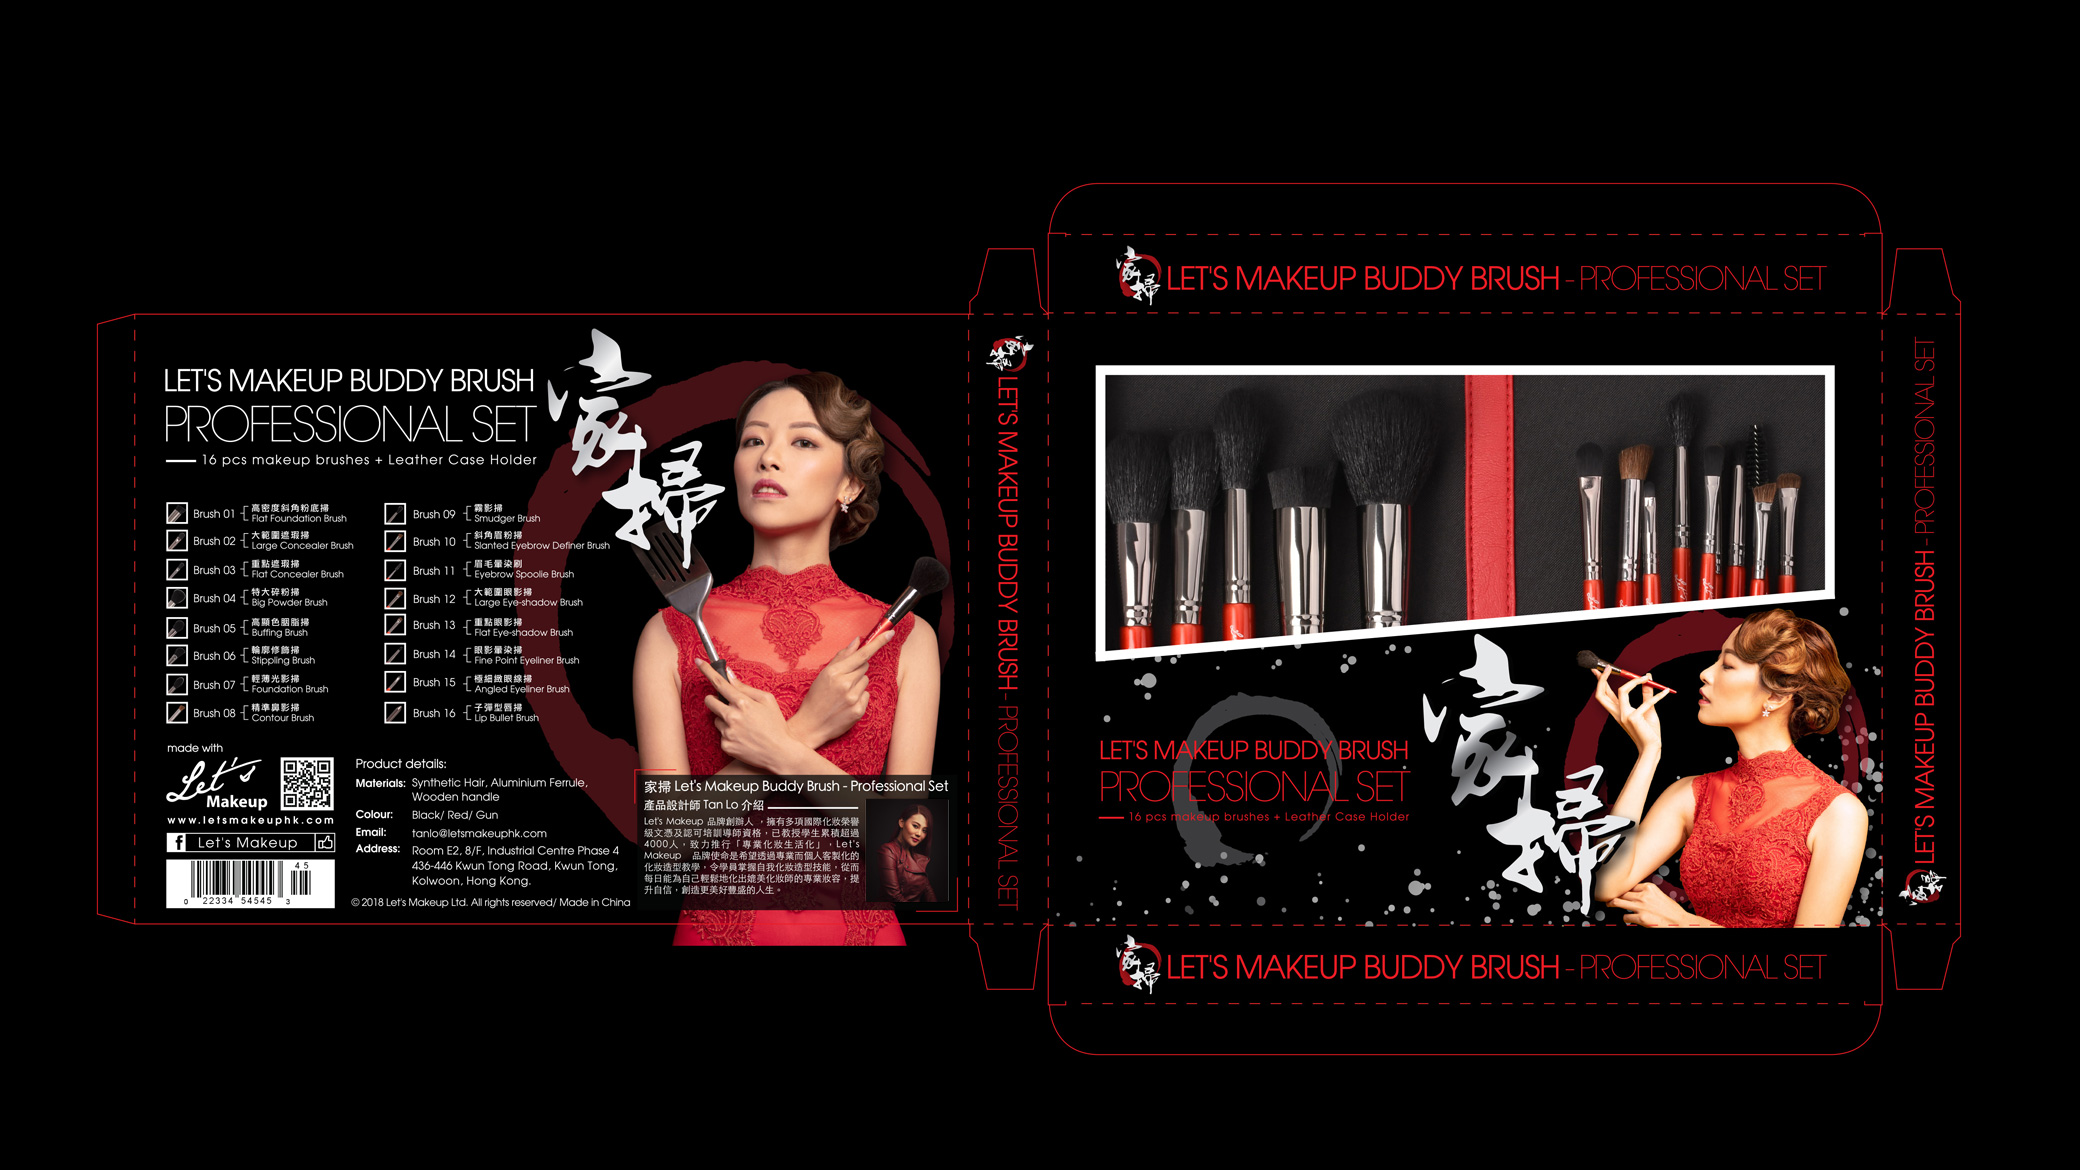 Print layout of The packaging design of Let's Makeup professional makeup brush set